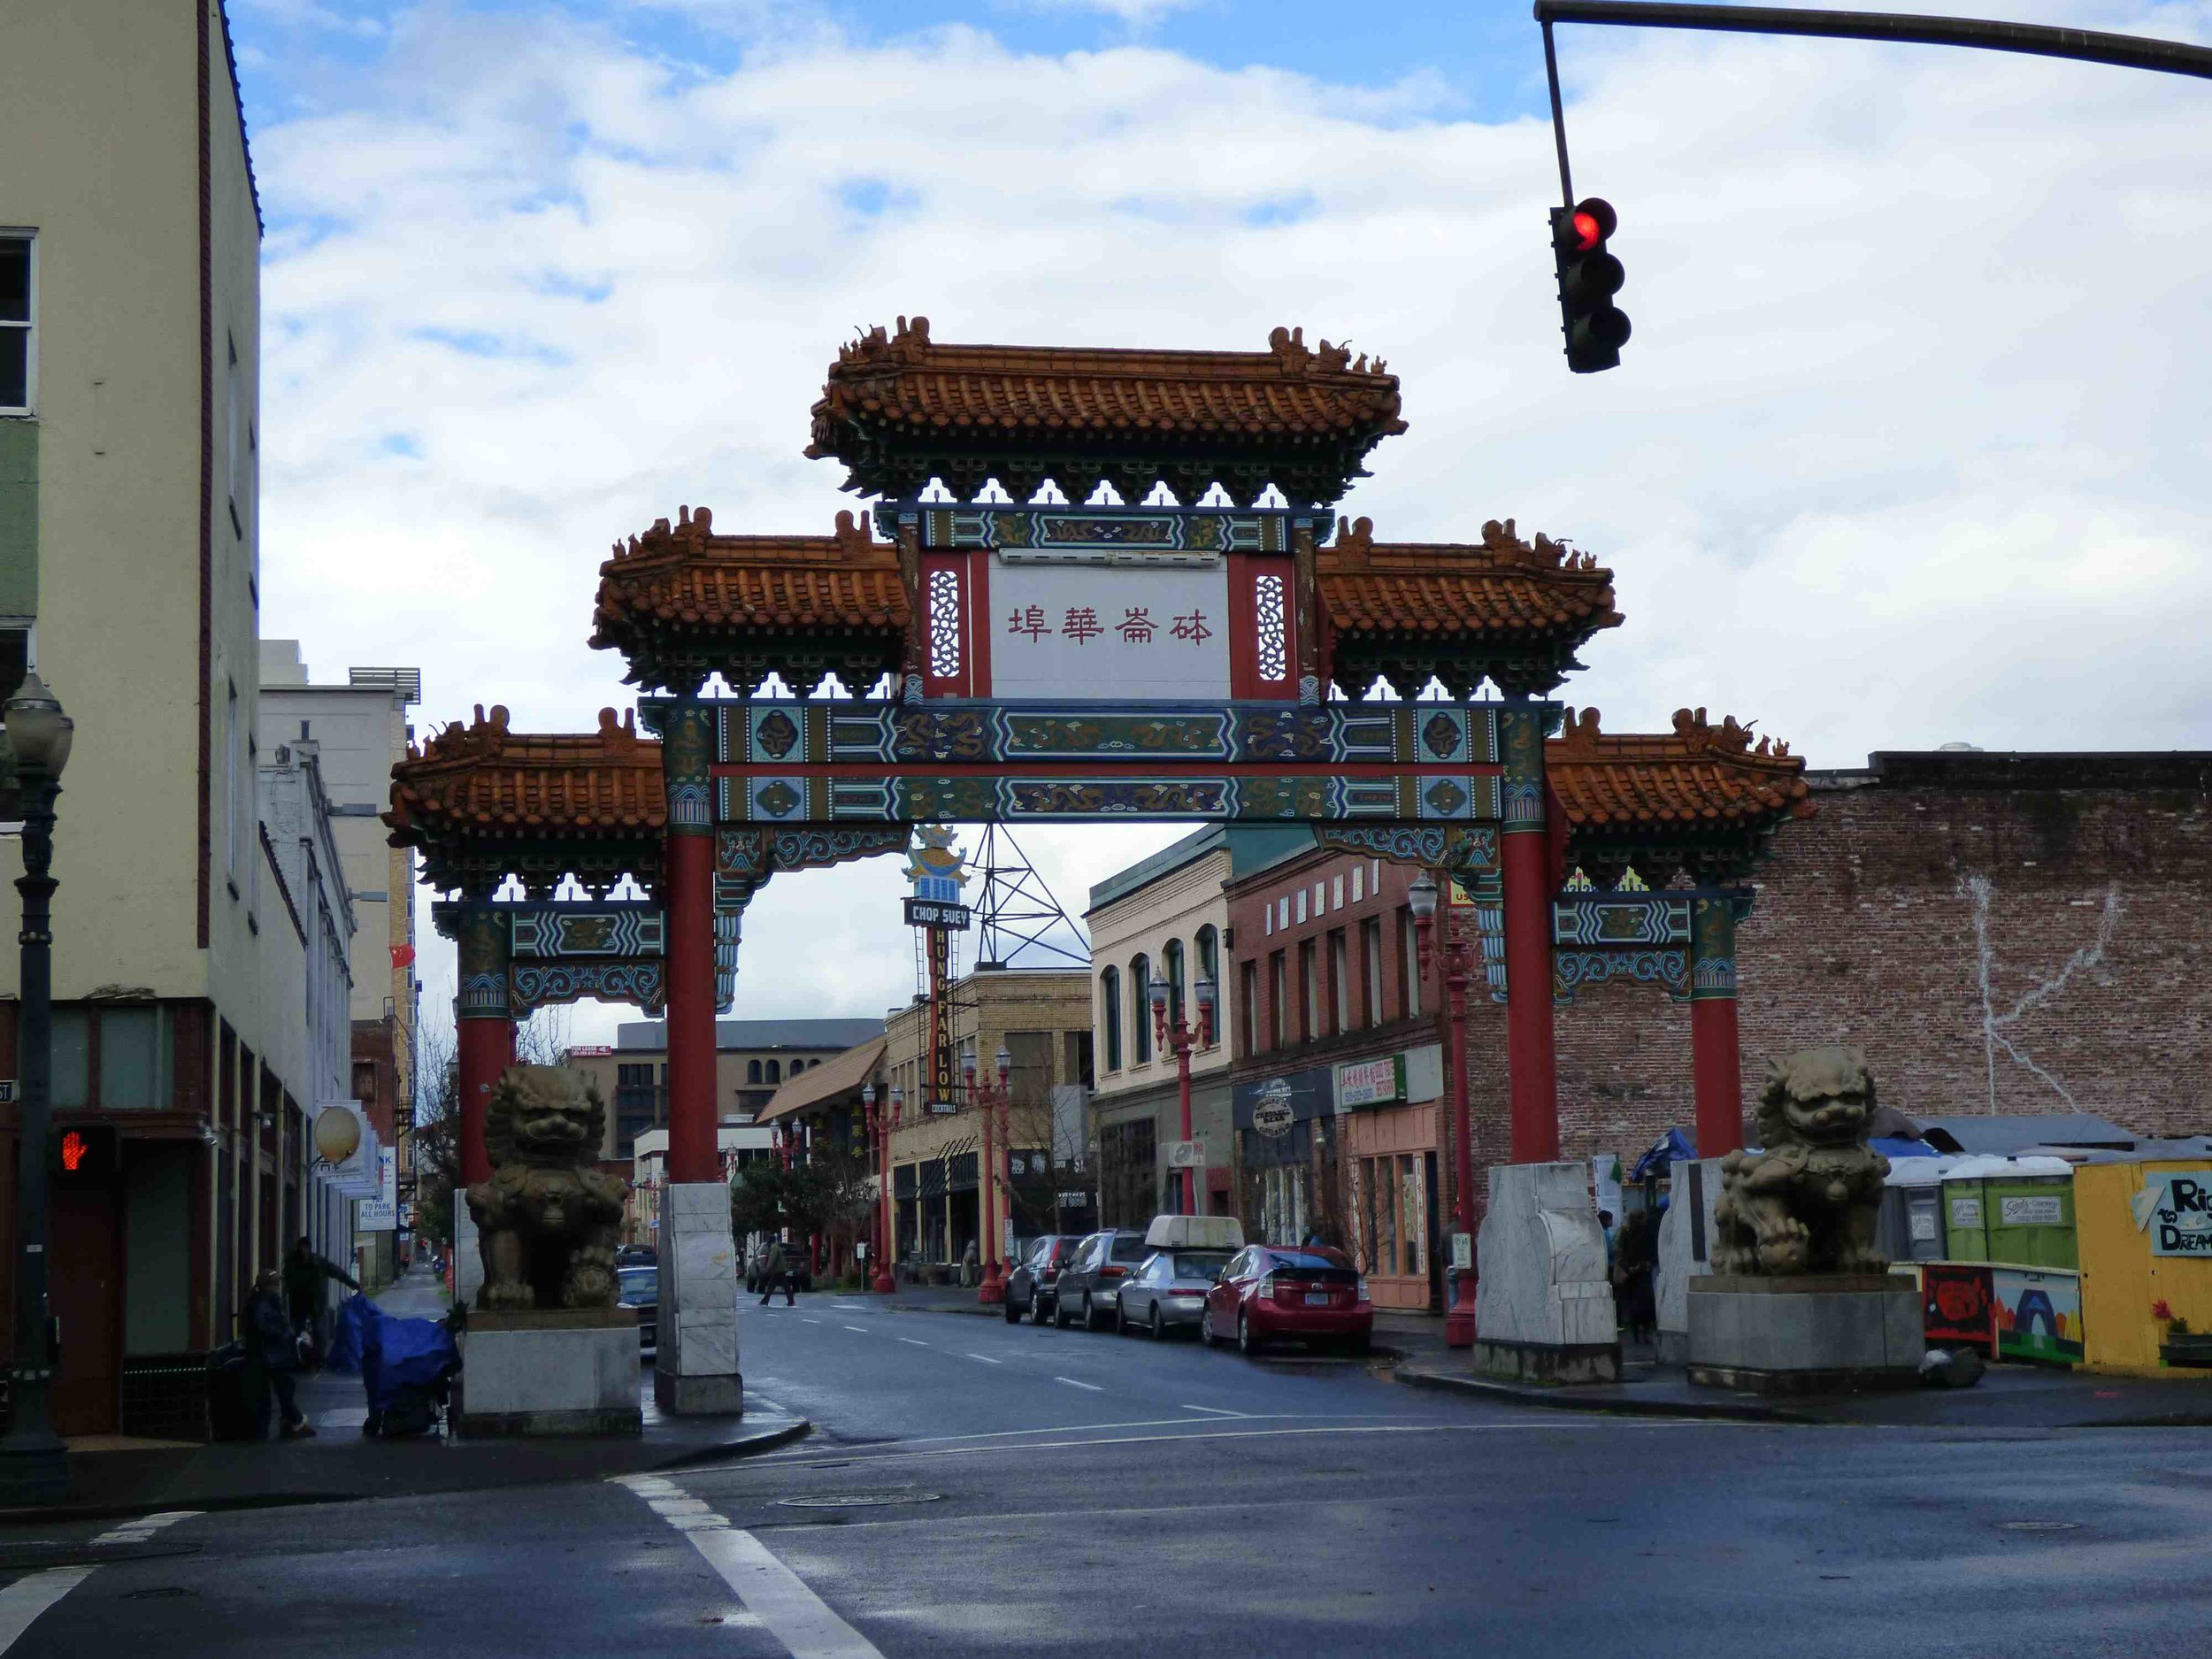 Old Town Chinatown in Portland